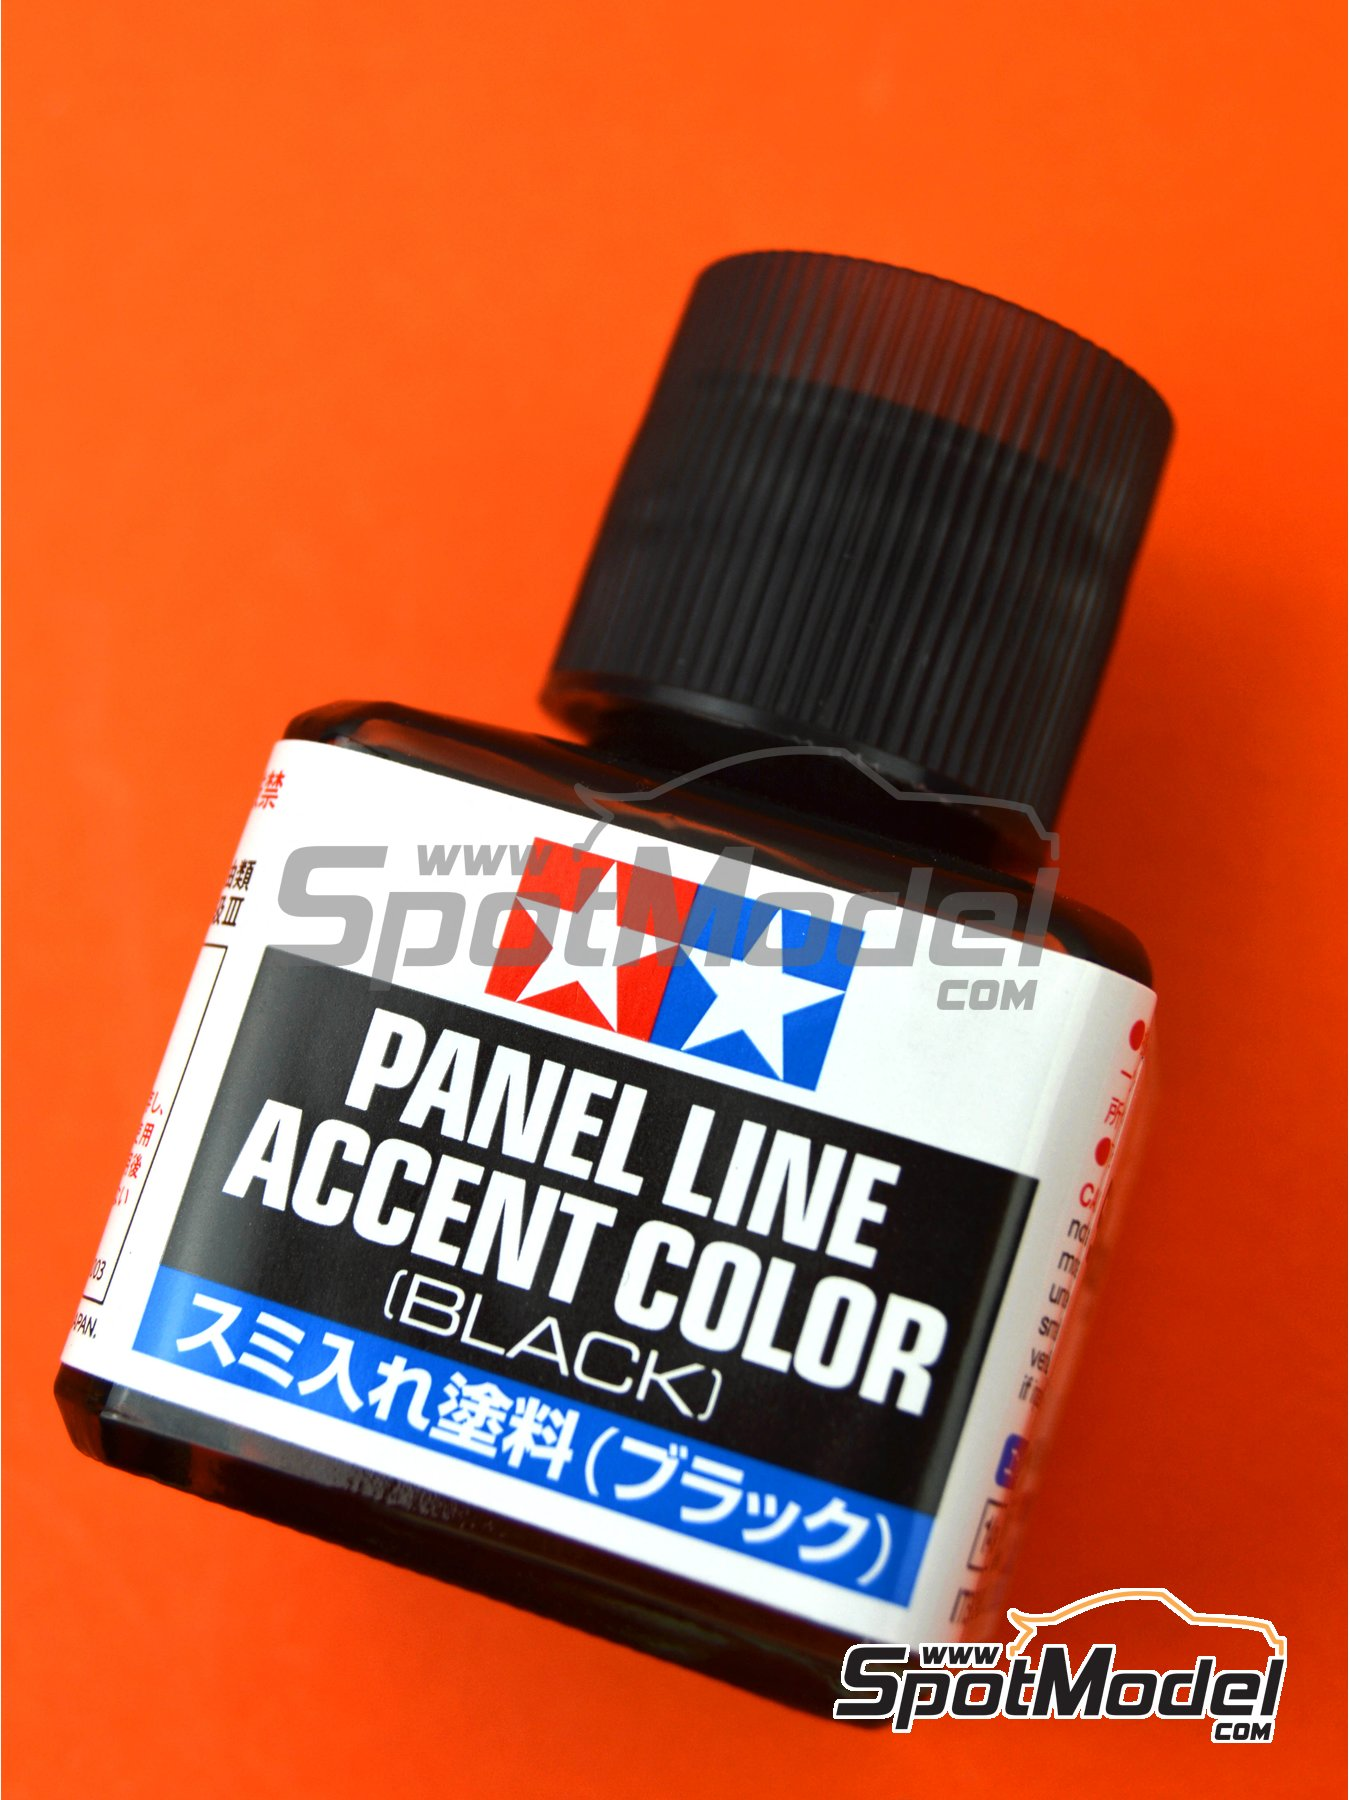 Panel line accent color black | Paint manufactured by Tamiya (ref. TAM87131) image